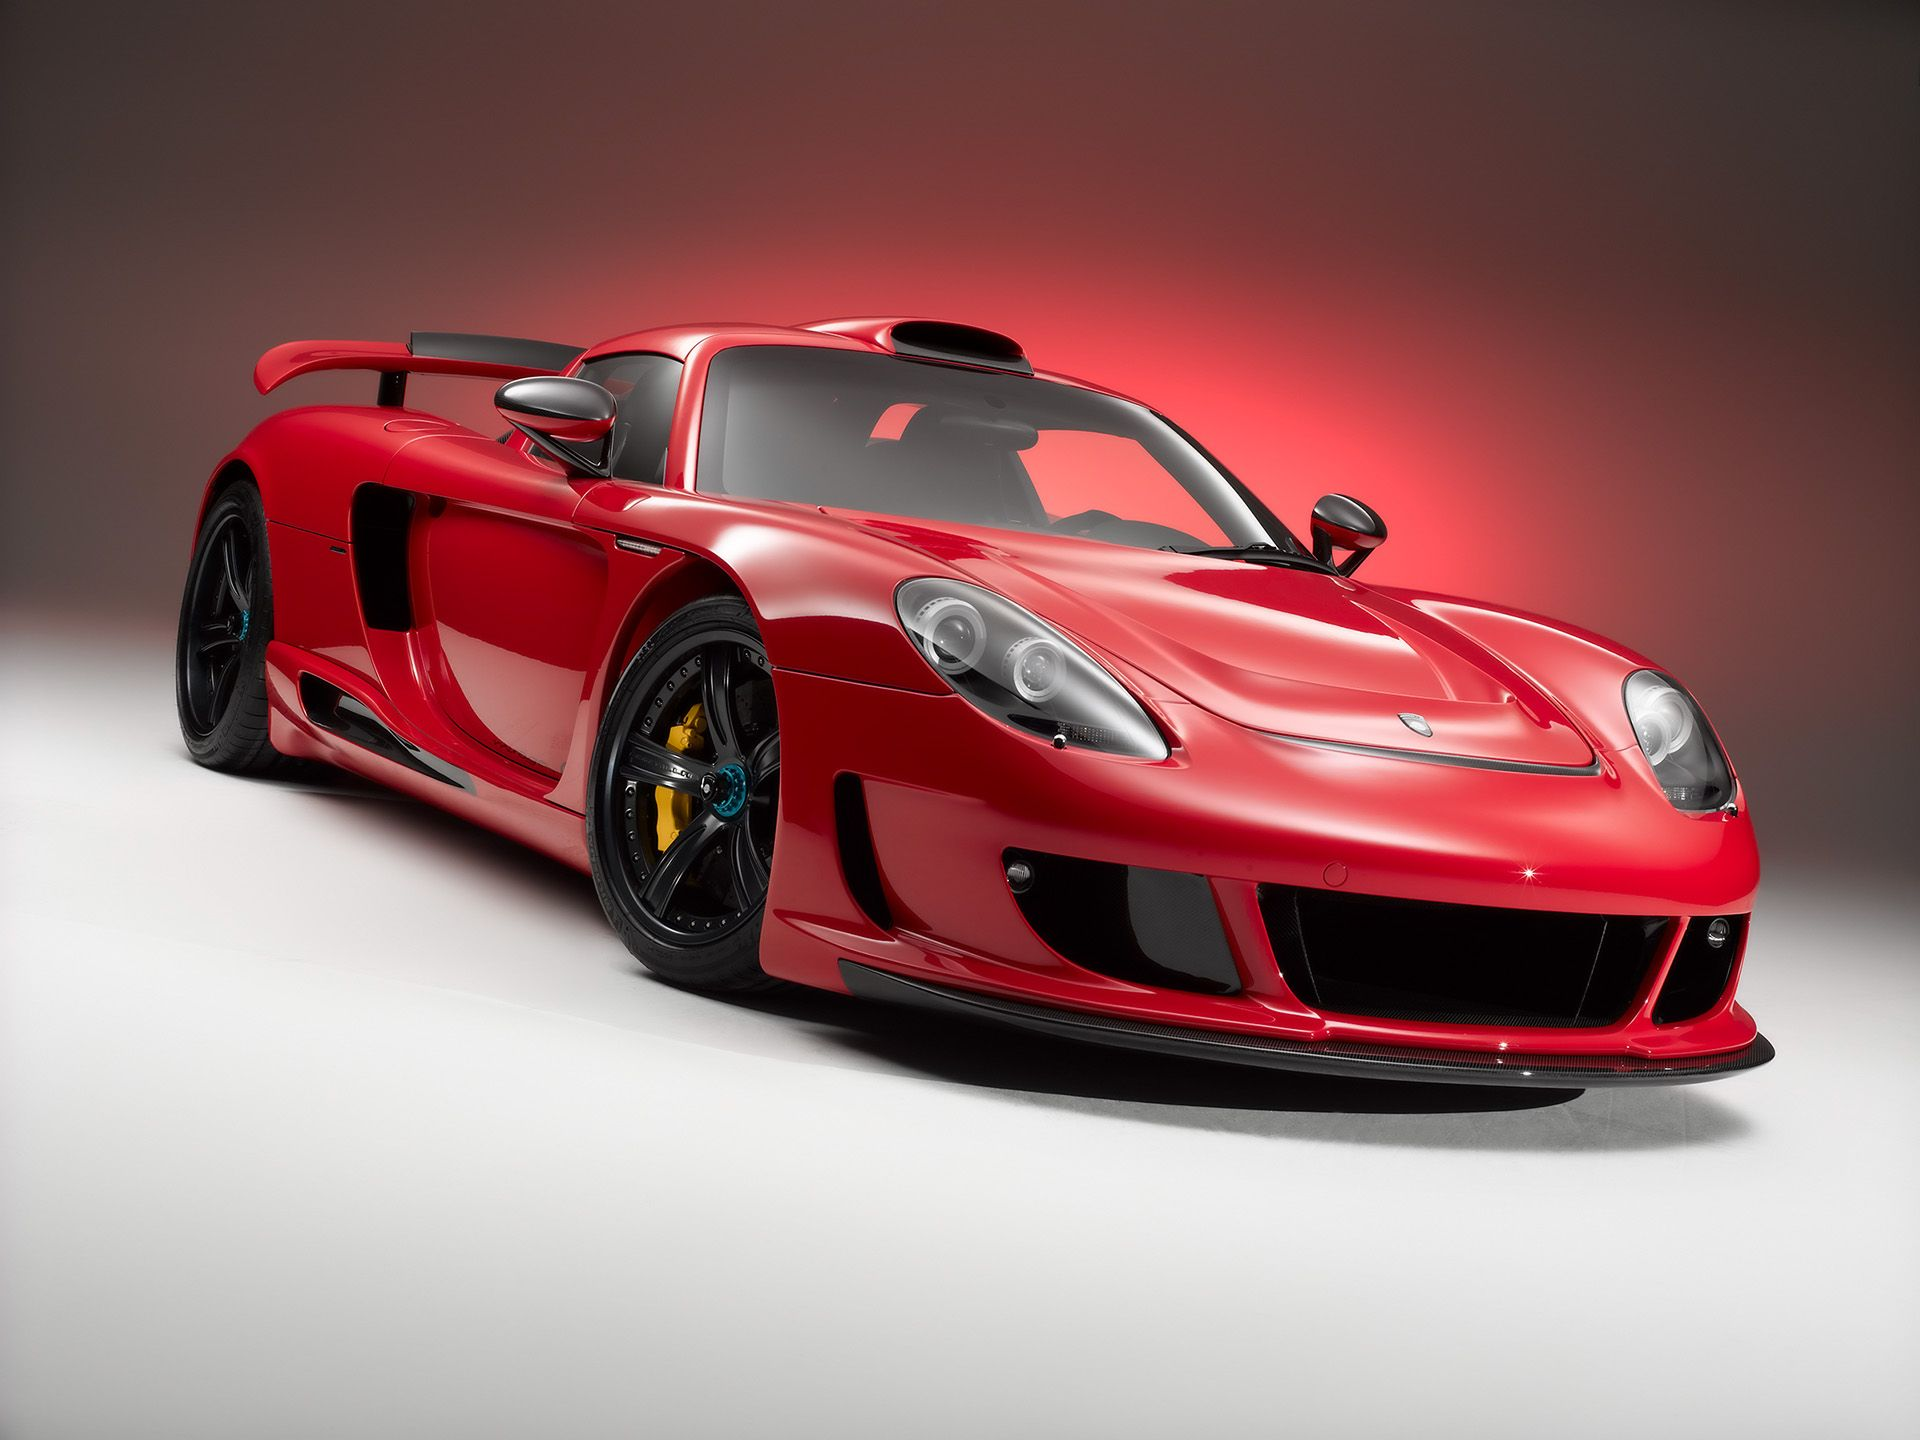 2007 Gemballa Mirage Gt Black Edition Based On Porsche Carrera Gt Front And Side Tilt 1920x1440 Wallpaper Porsche Carrera Porsche Carrera Gt Porsche Cars